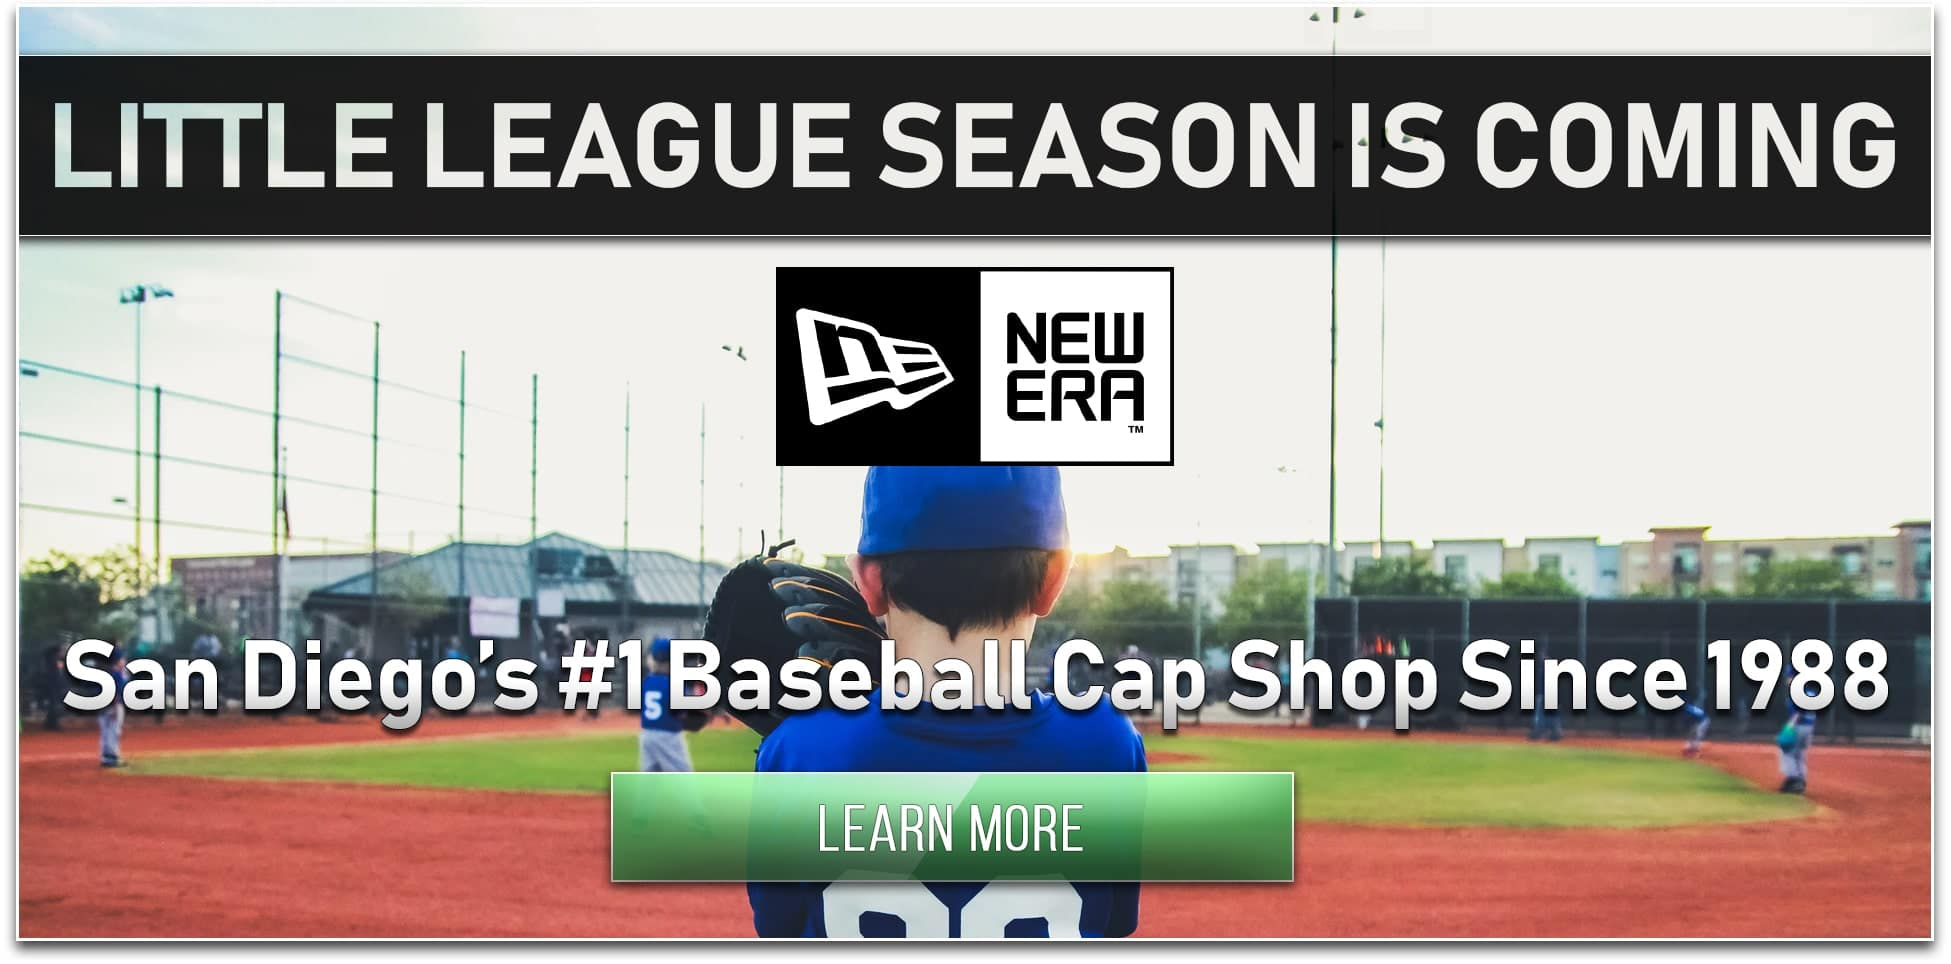 Little-League-Home-Page-Banner-04-min